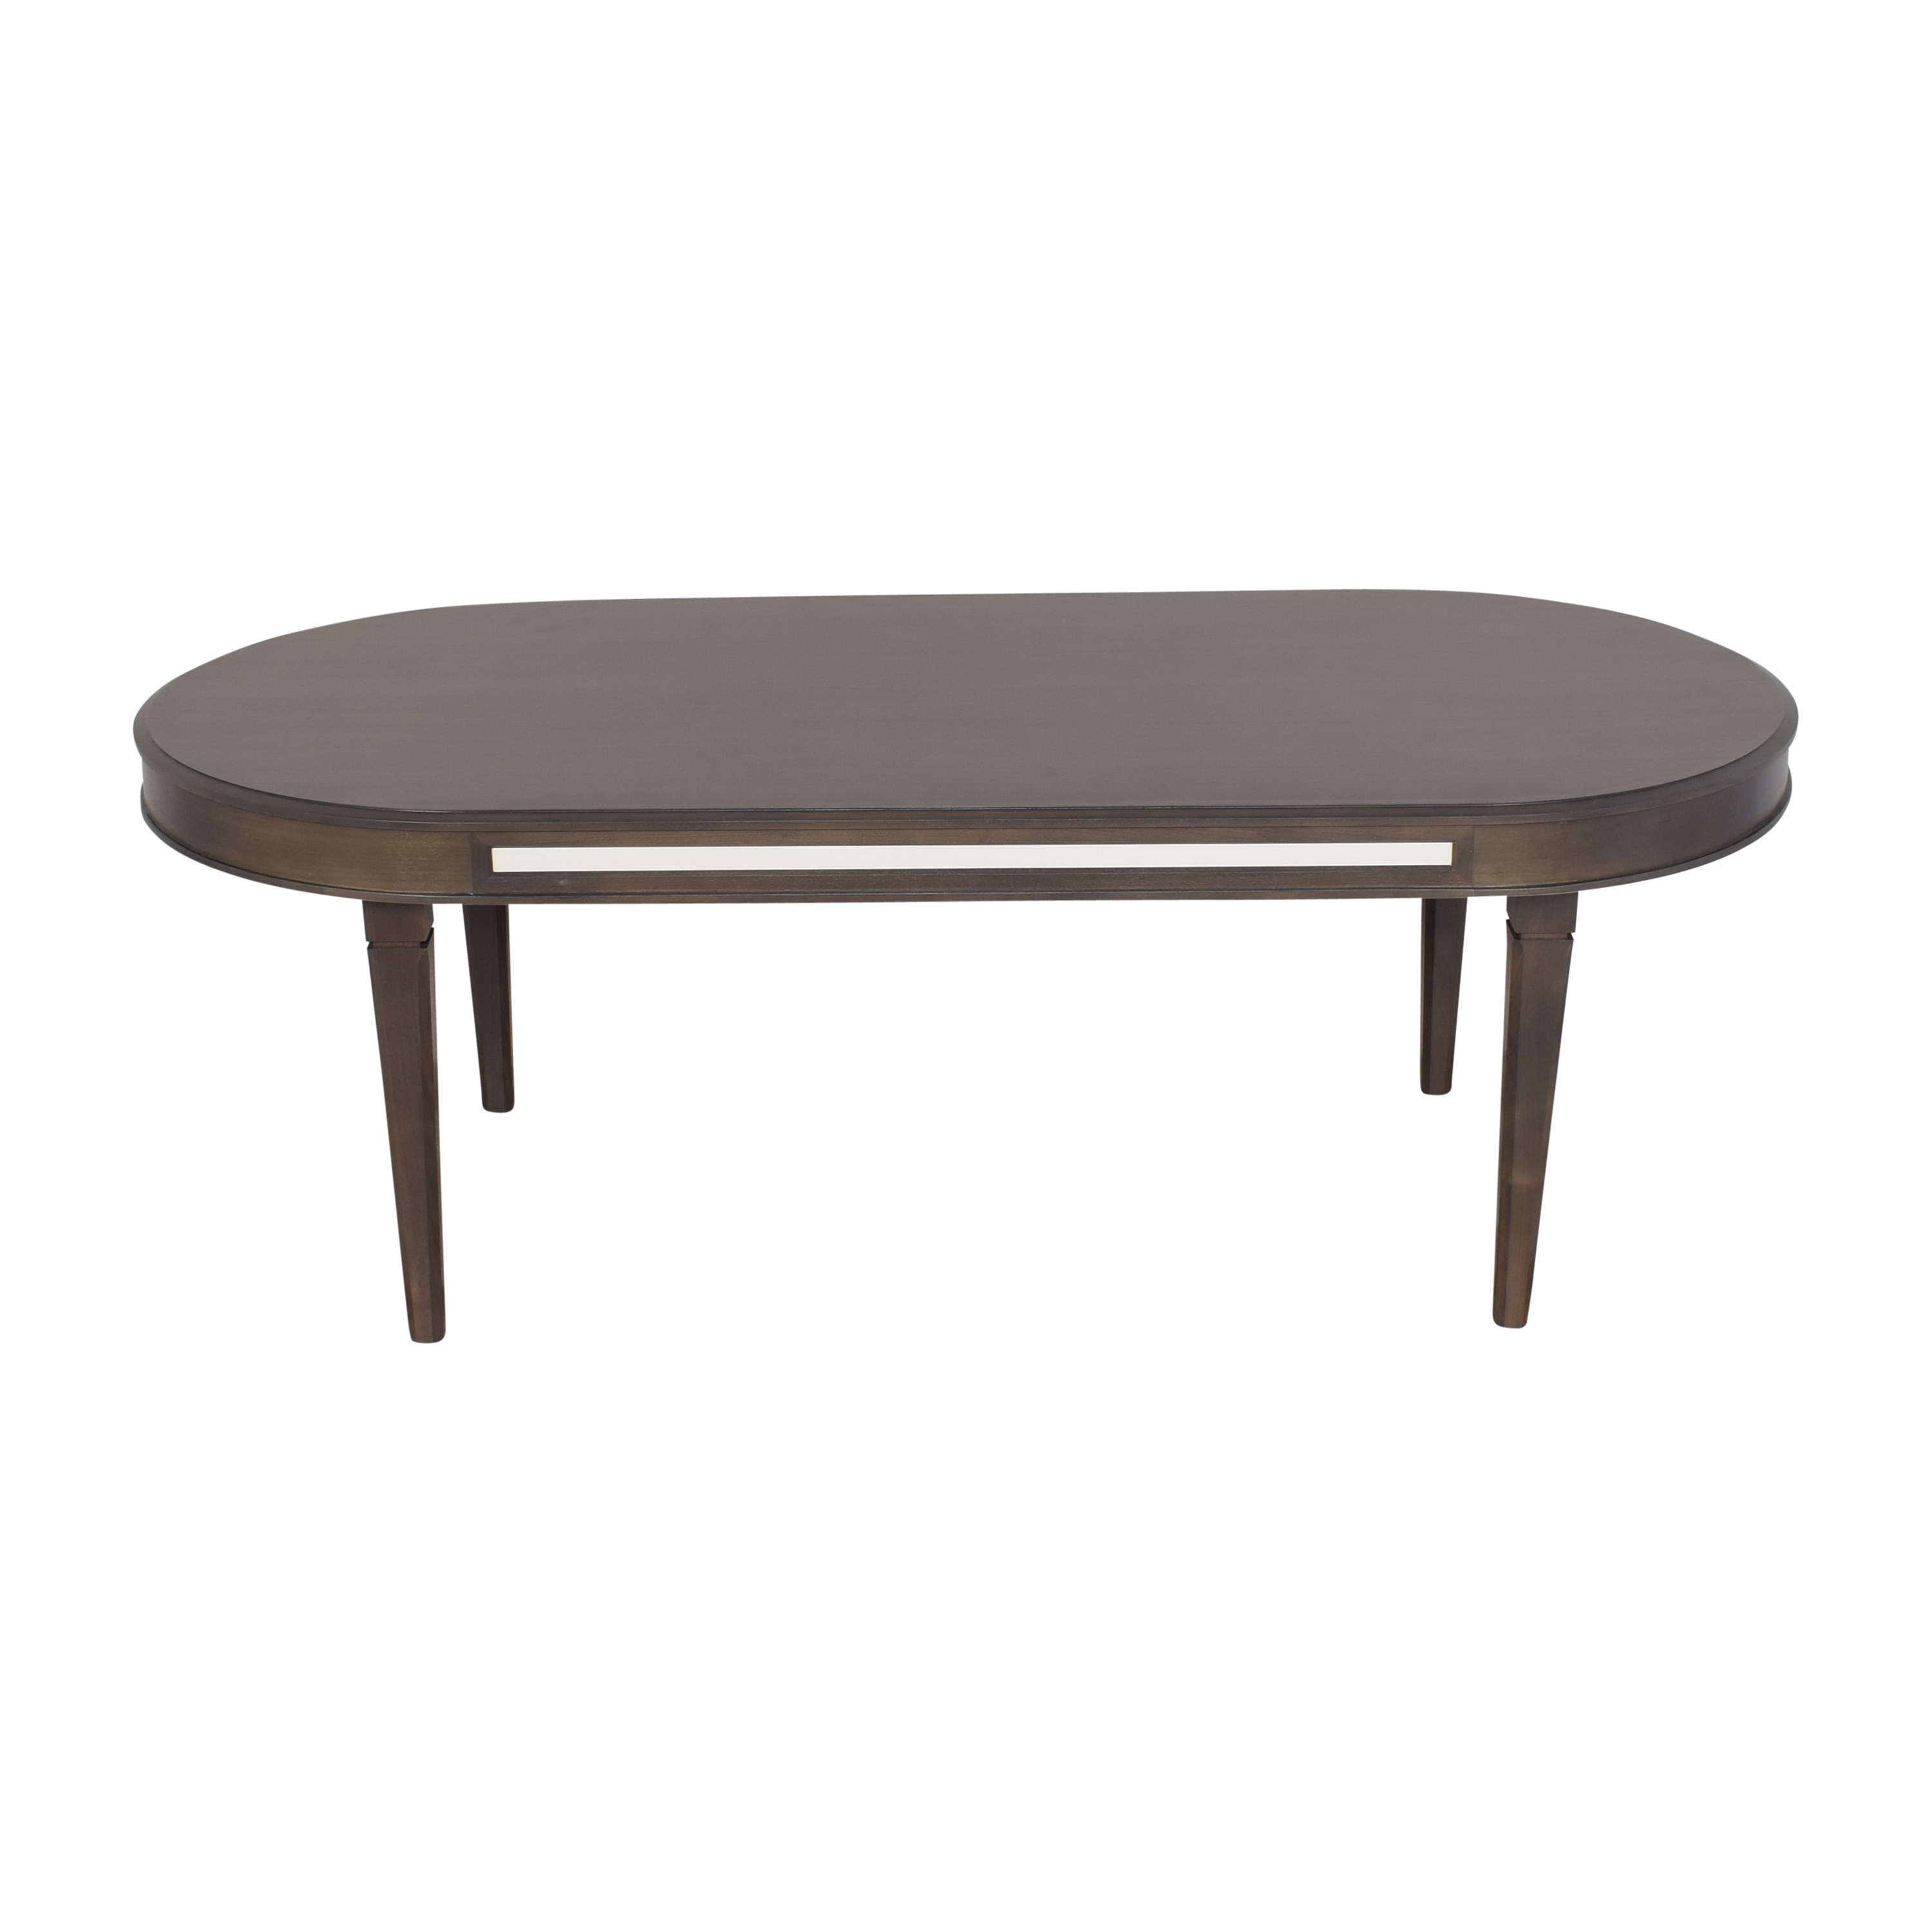 shop The New Traditionalists The New Traditionalists Oval Dining Table online